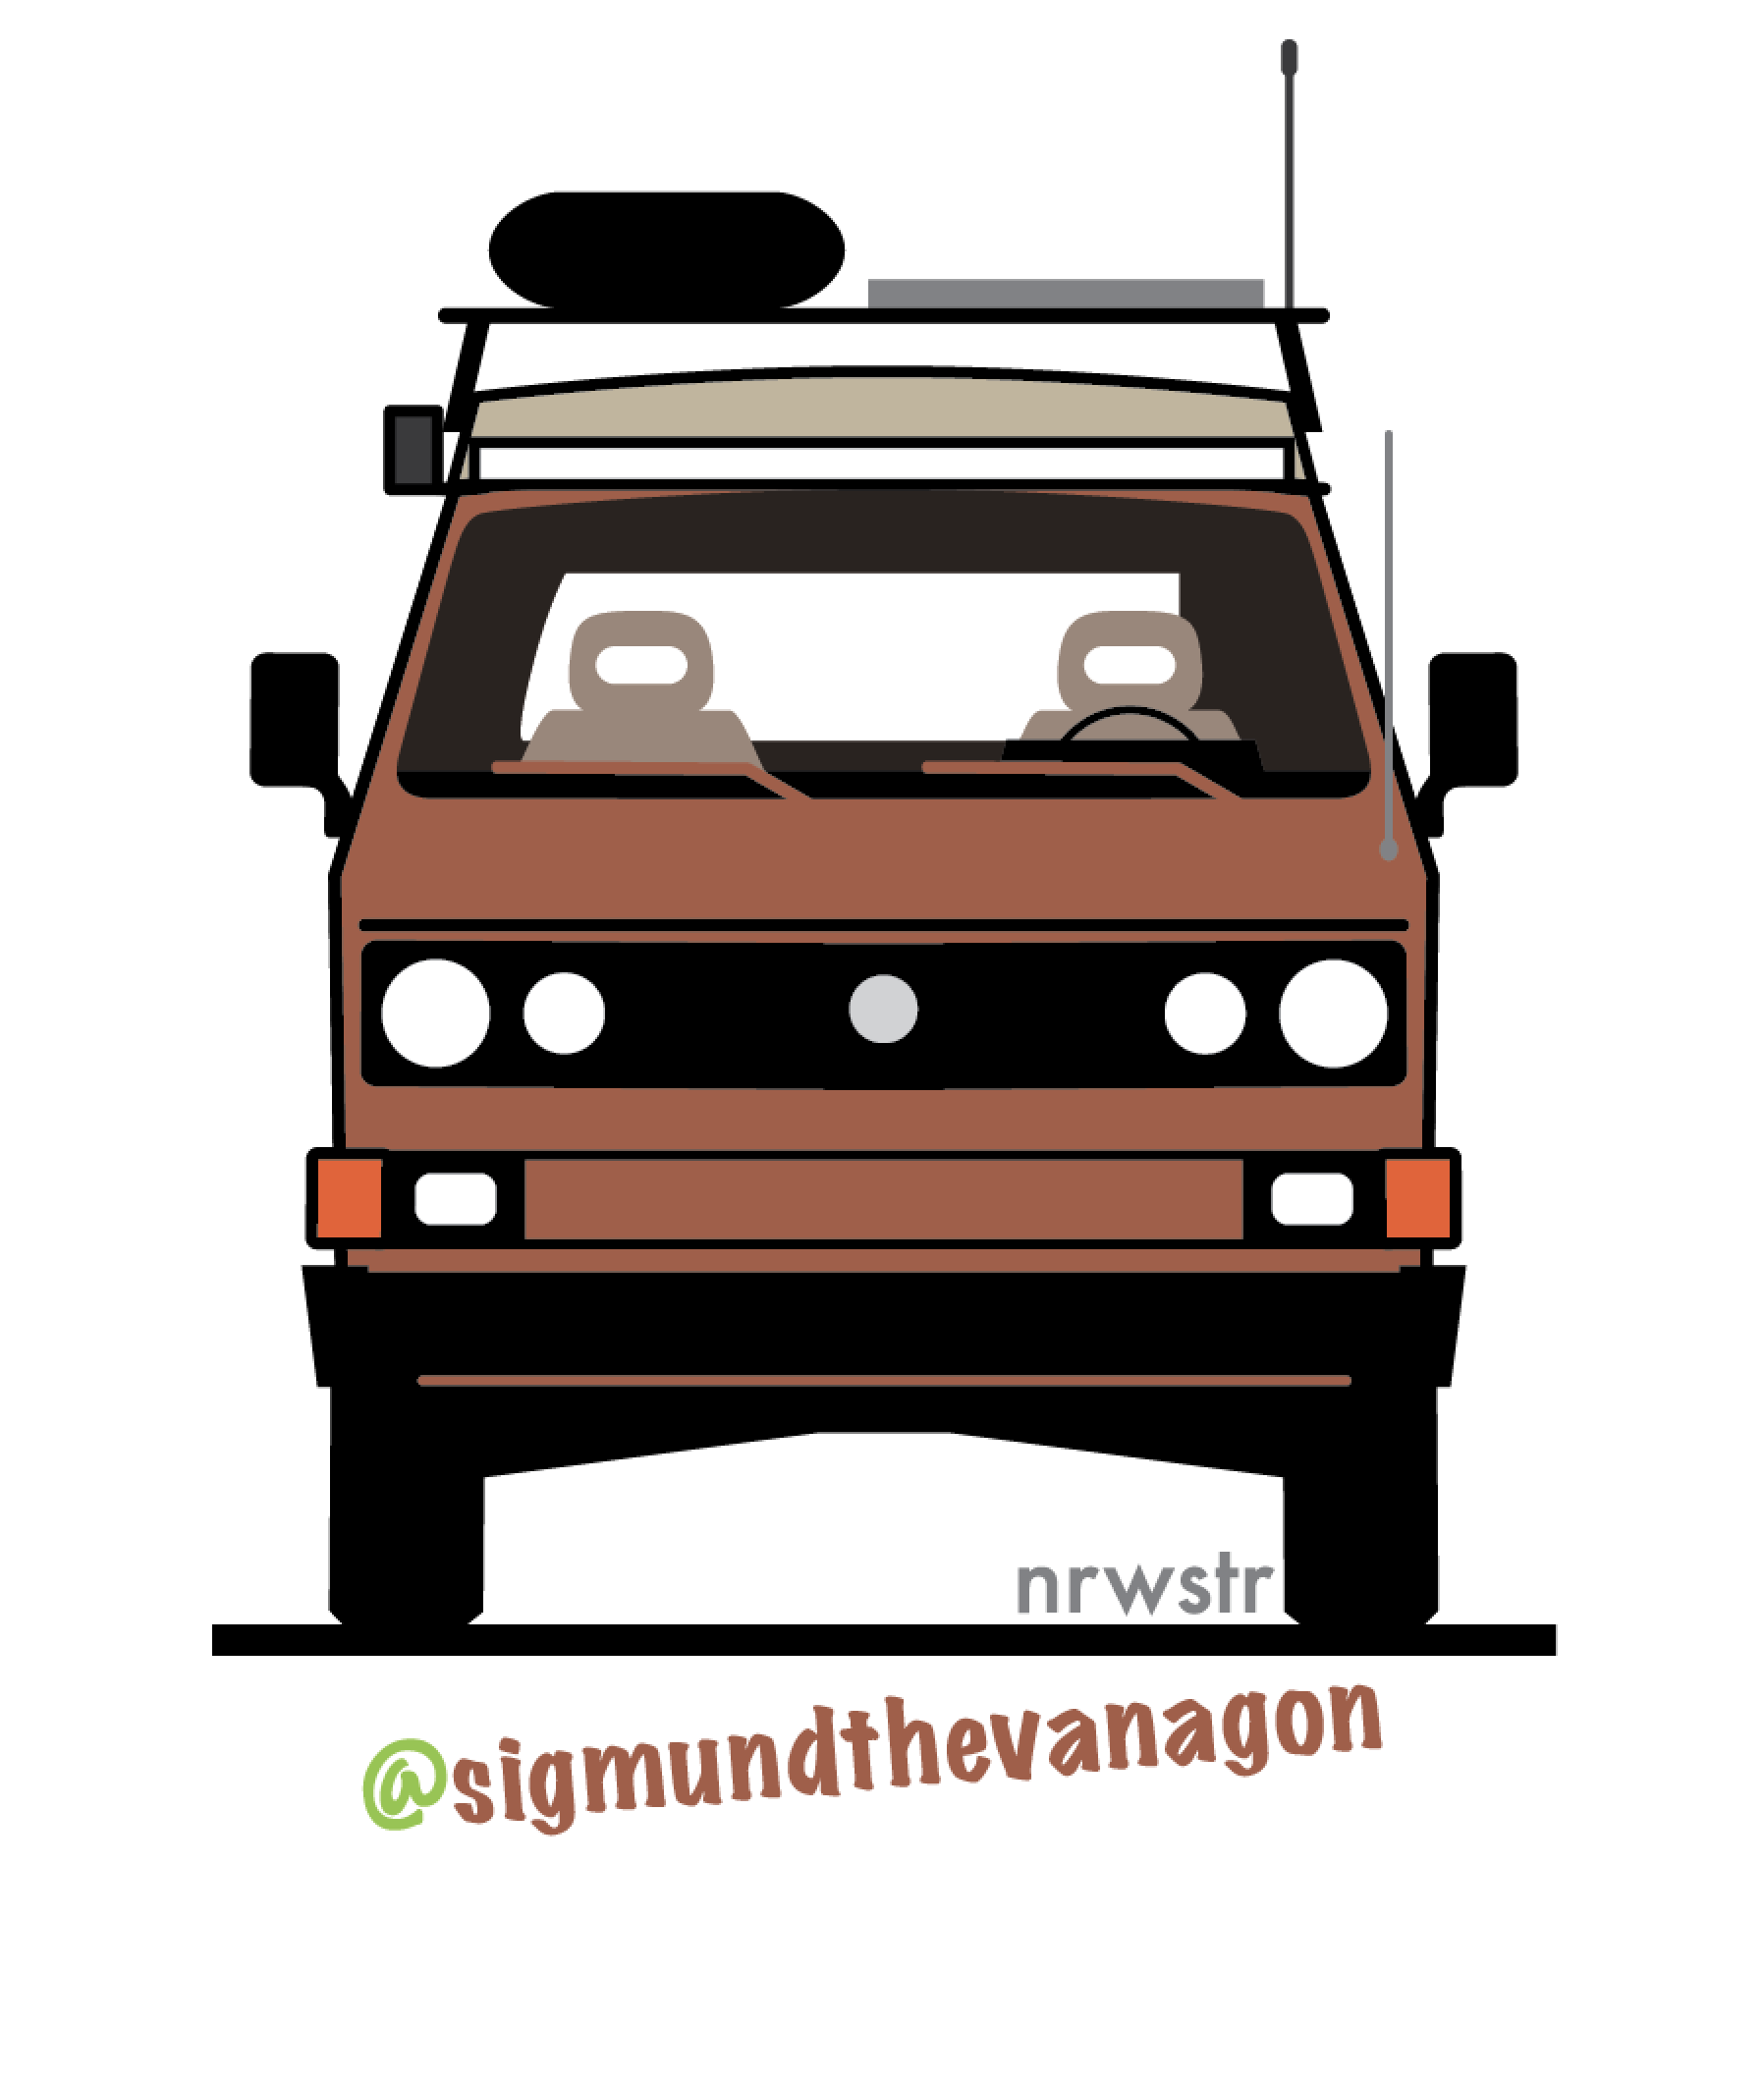 sigmundthevanagon front view.png